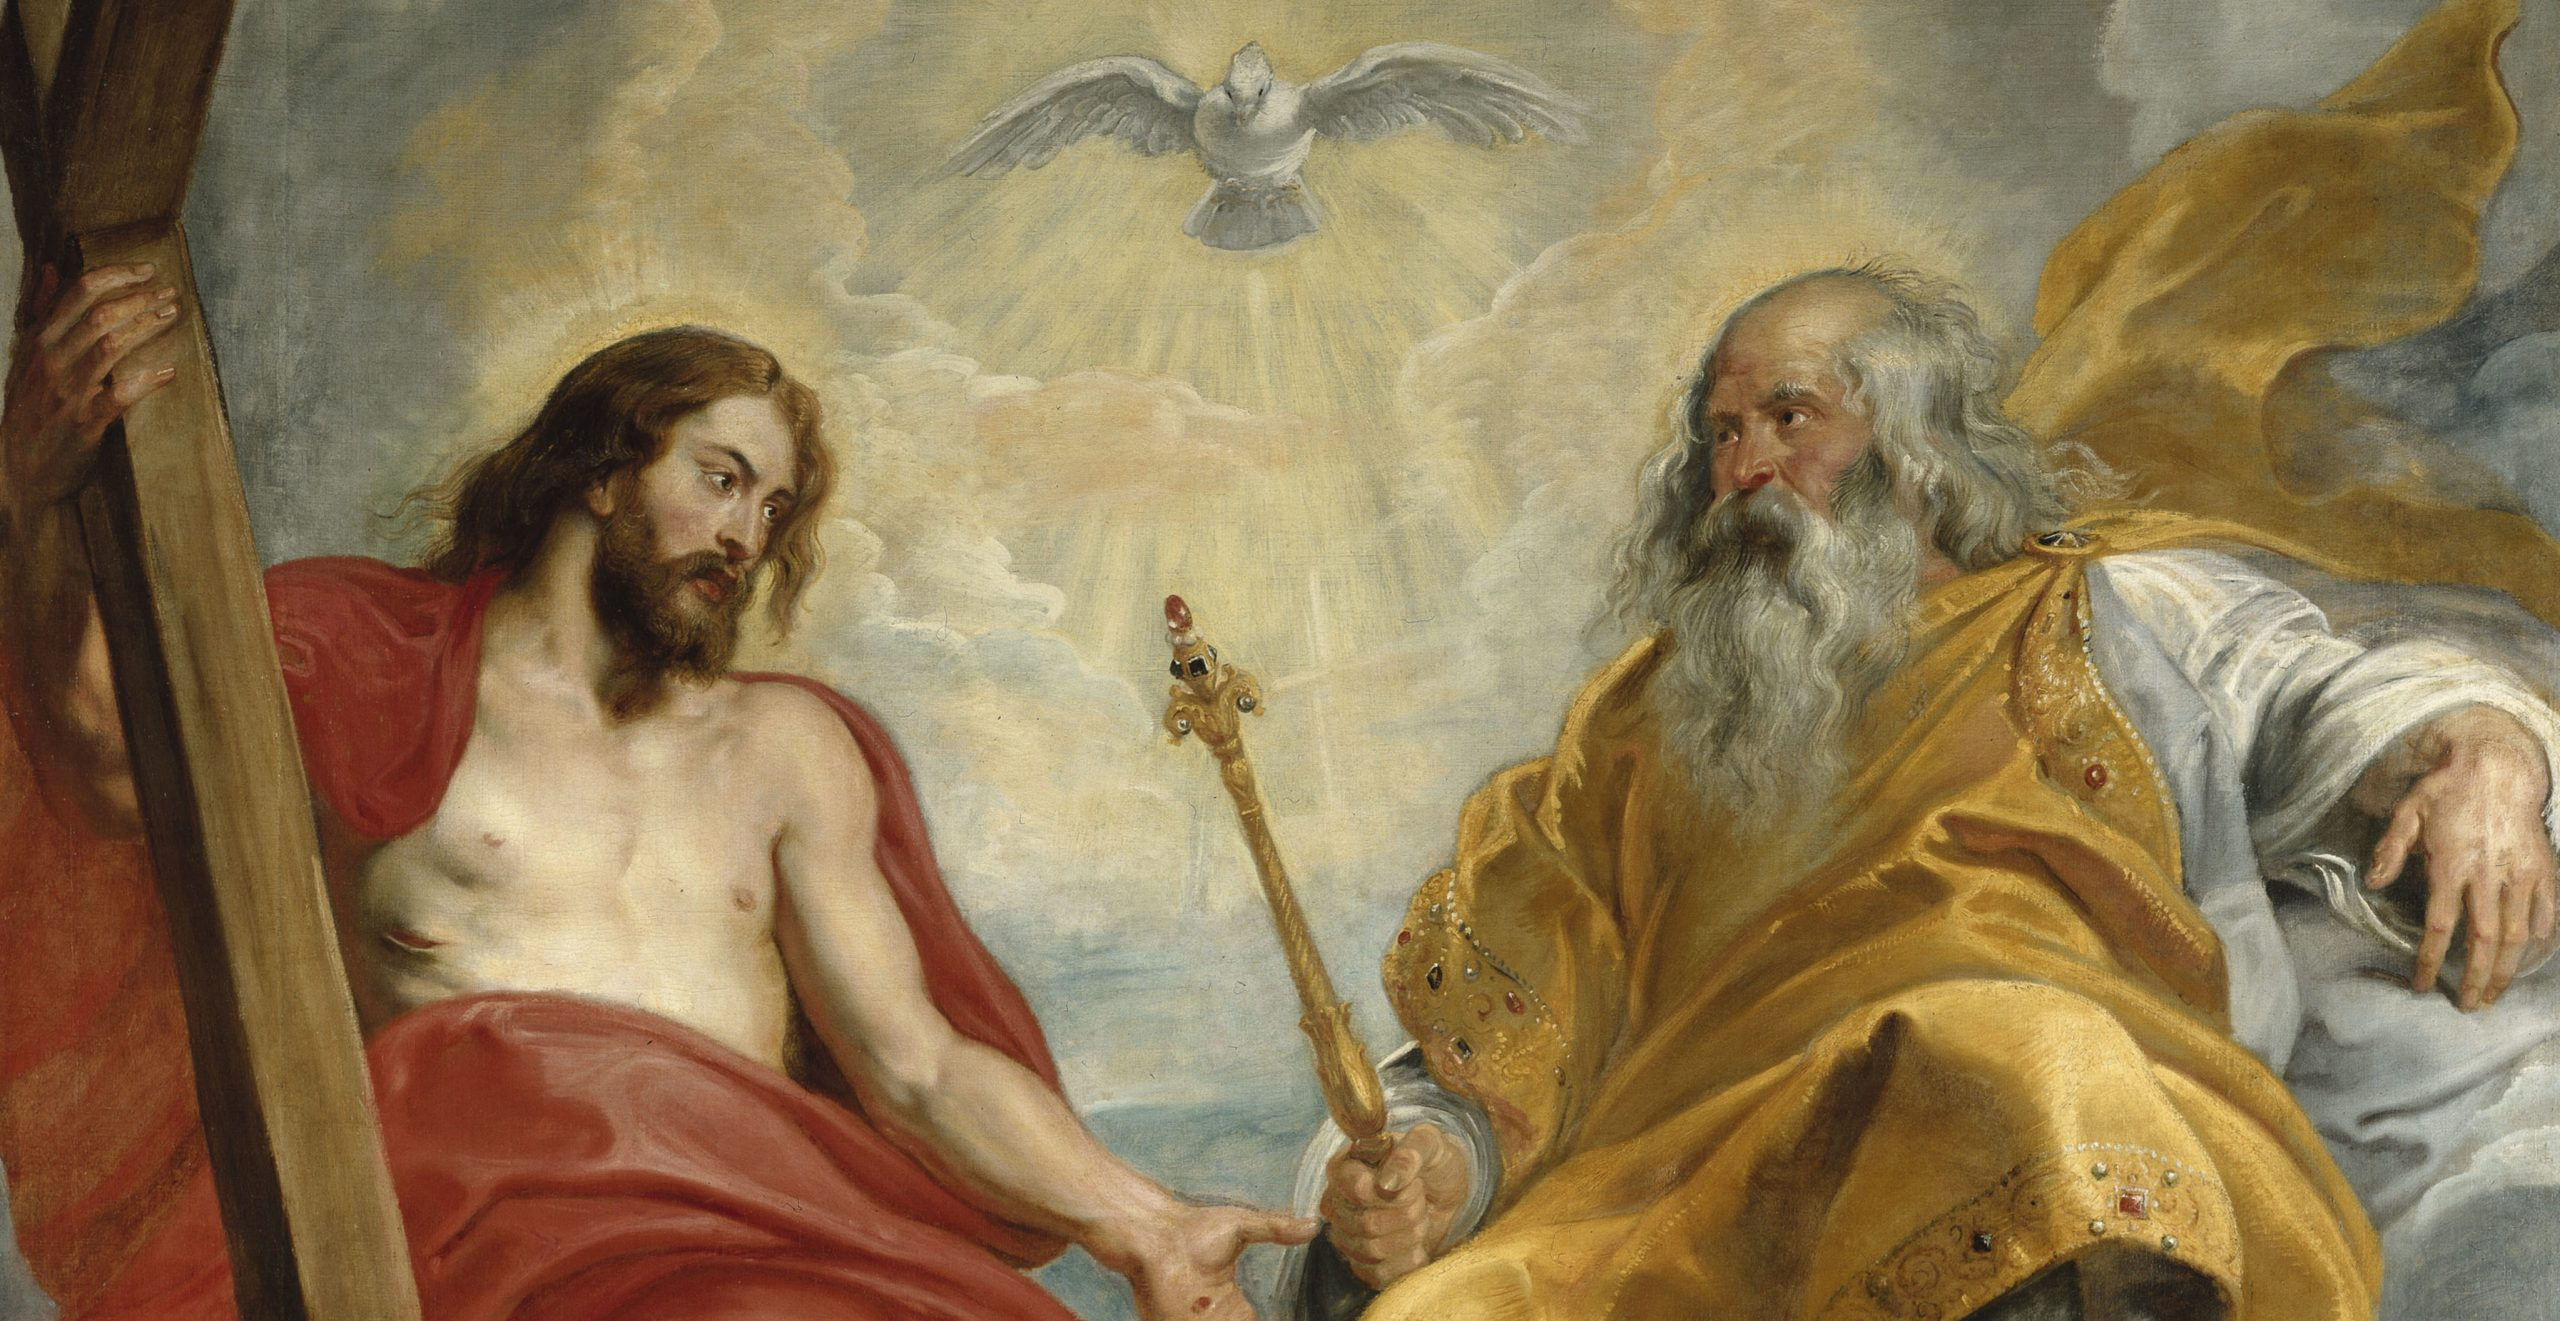 bergsma, jesus and the old testament roots of the priesthood, call no man father